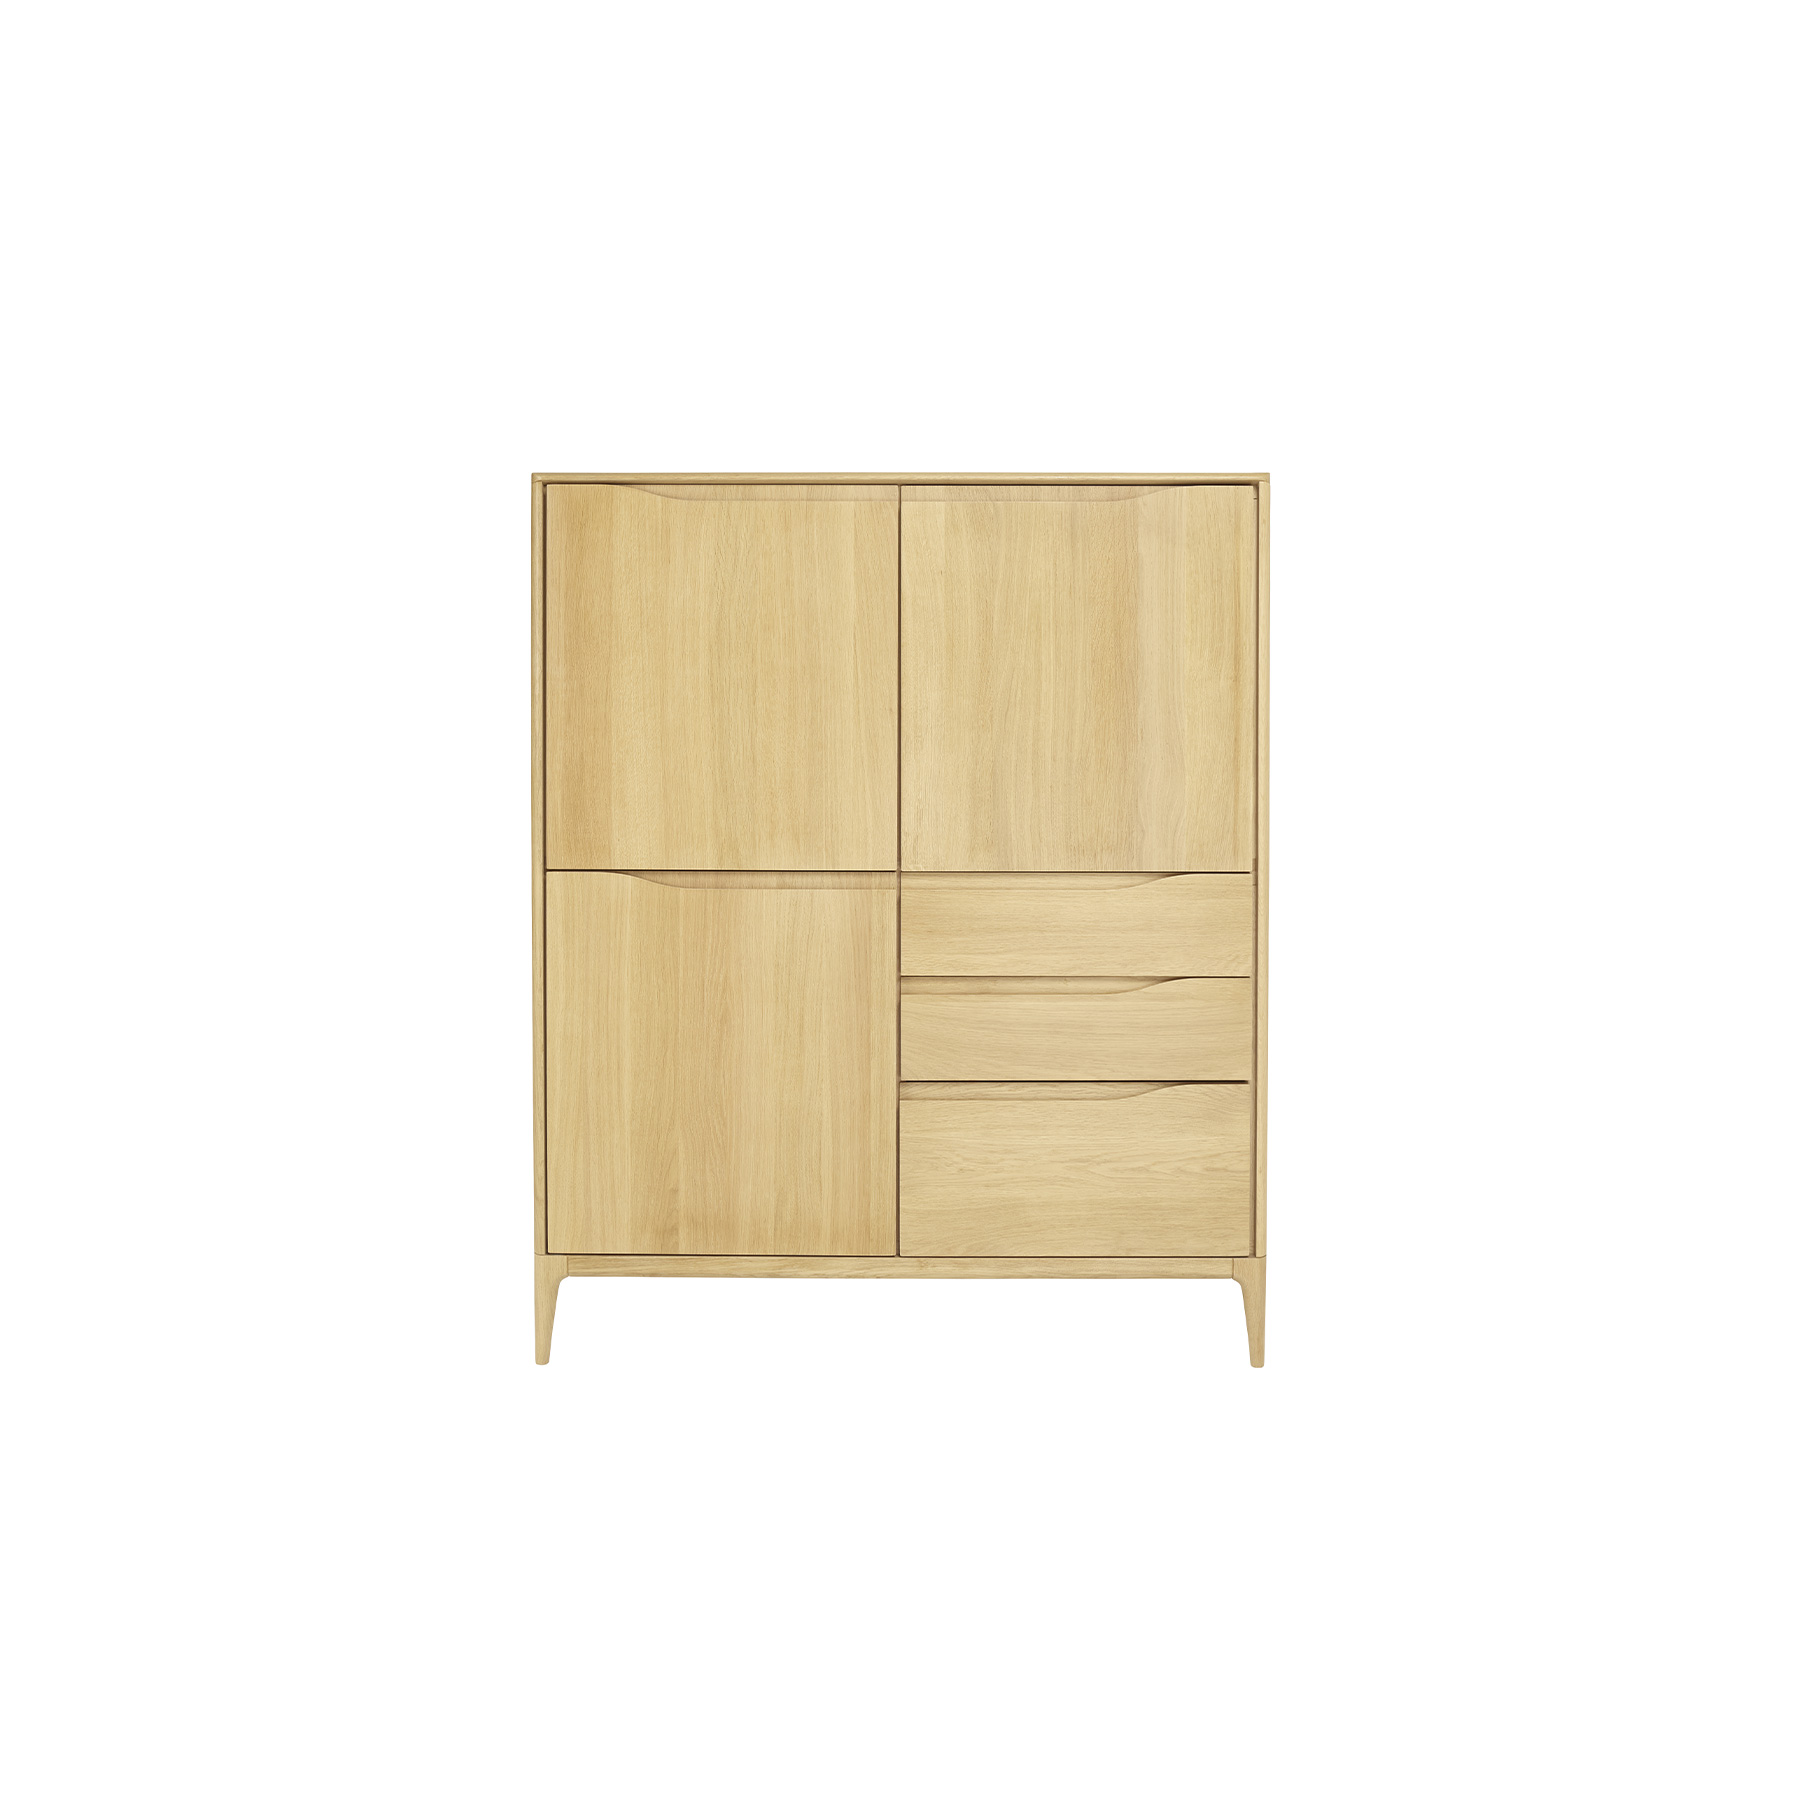 Romana Highboard - Romana is a modern dining and living-room furniture collection with soft curves and sophisticated craftsmanship that emphasises Ercol's skill in working with solid timber. Romana is made from pale oak and finished in a clear matt lacquer to both protect the timber and show off its beauty. Wood finishes and colour samples are shown for guidance only as screen colours may vary. We would recommend ordering a sample in your chosen finish. However, wood is a natural material and varies in colour, grain and structure.  | Matter of Stuff